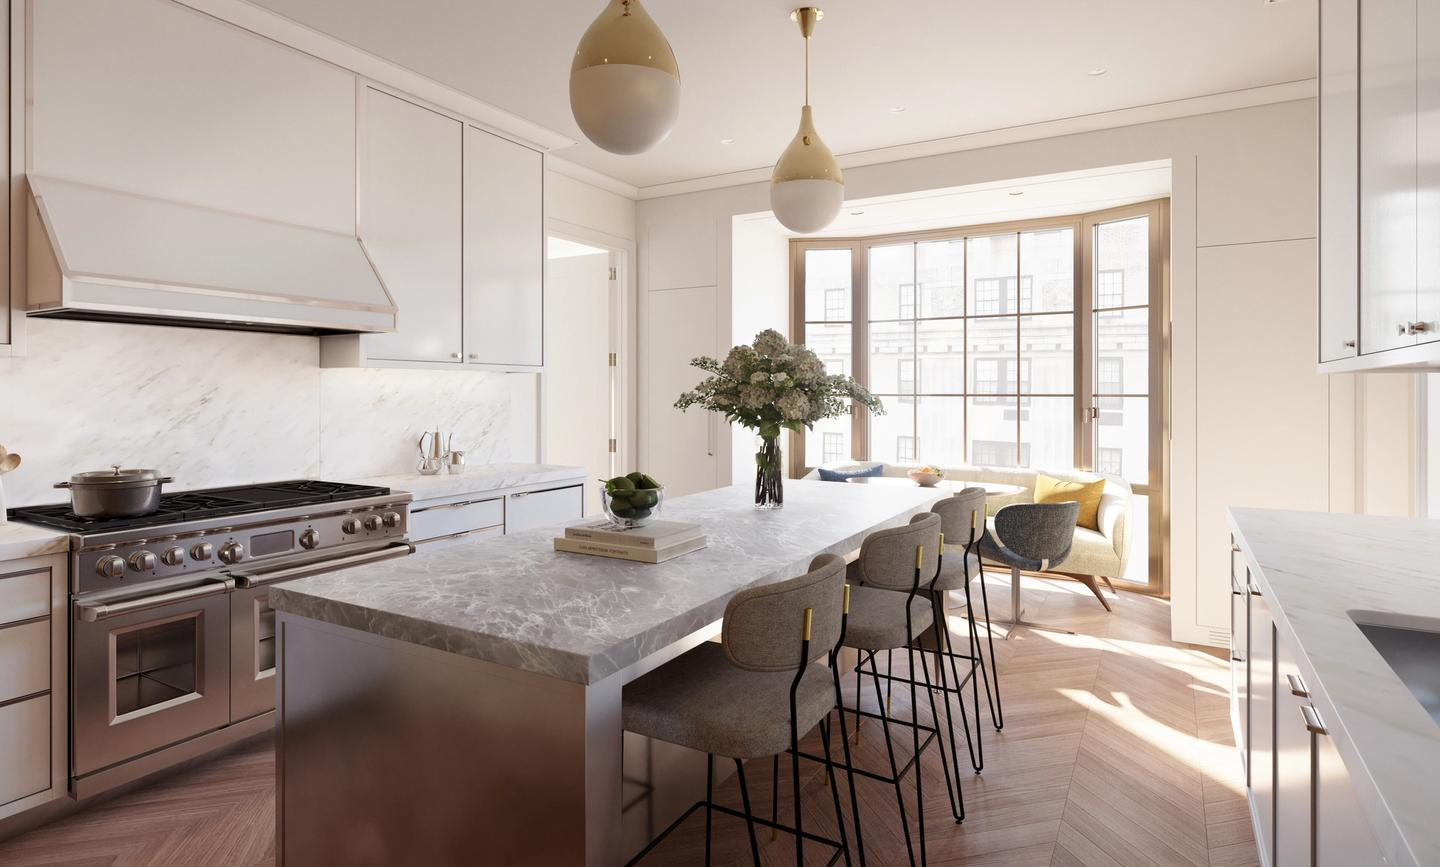 Windowed kitchen in half-floor residence; all kitchens feature premium Wolf and Sub-Zero appliances, including vented range hoods, Dornbracht fittings, and Miele dishwashers